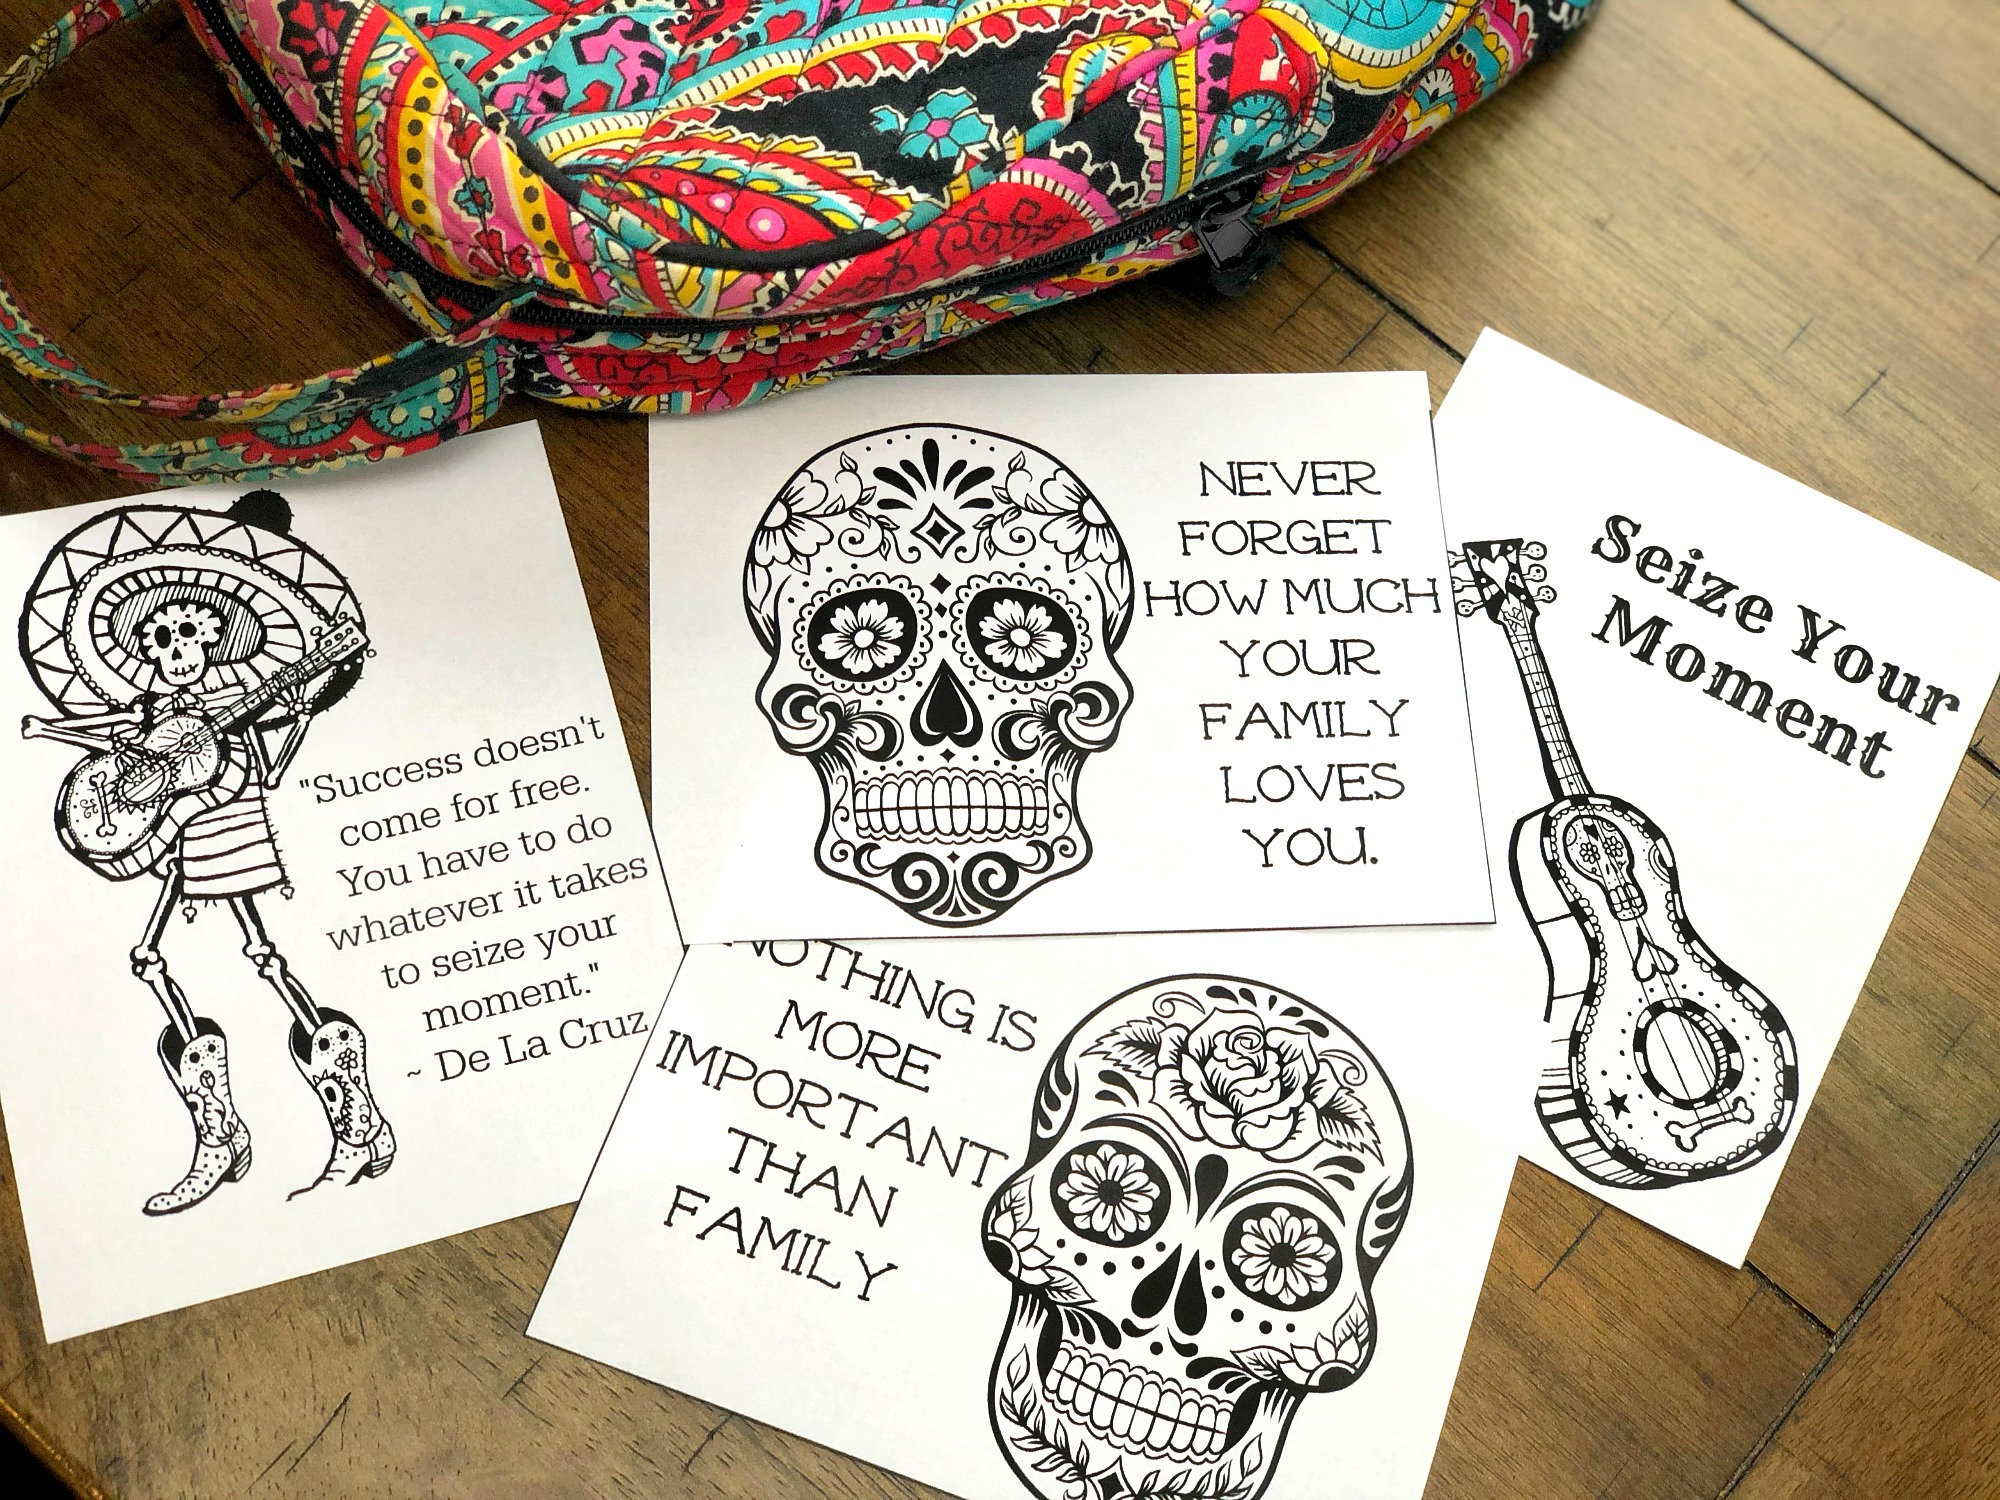 Disney Pixar Coco Free Printable Day of the Dead lunchbox notes